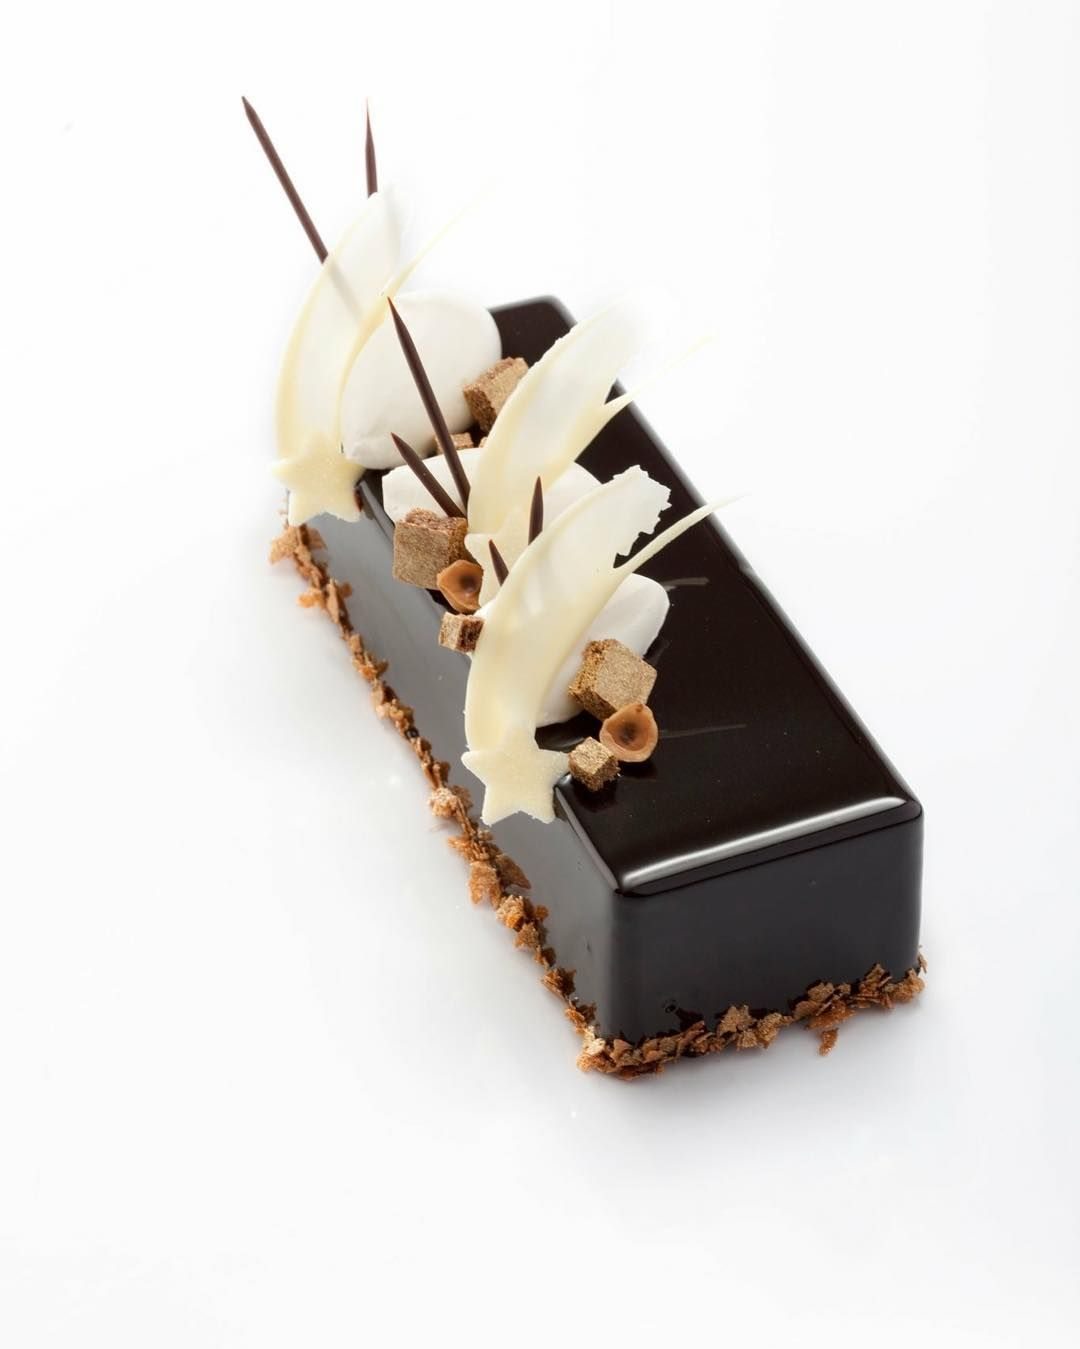 For the last day of the 7 day challenge I would love to say  to @paulkennedysavour for inviting me. Hereby I present my Buche Noel that I created around 5 years ago. For the last day I invite my colleague @xavier_boyer to take the challenge. Xavier are you up for it!?